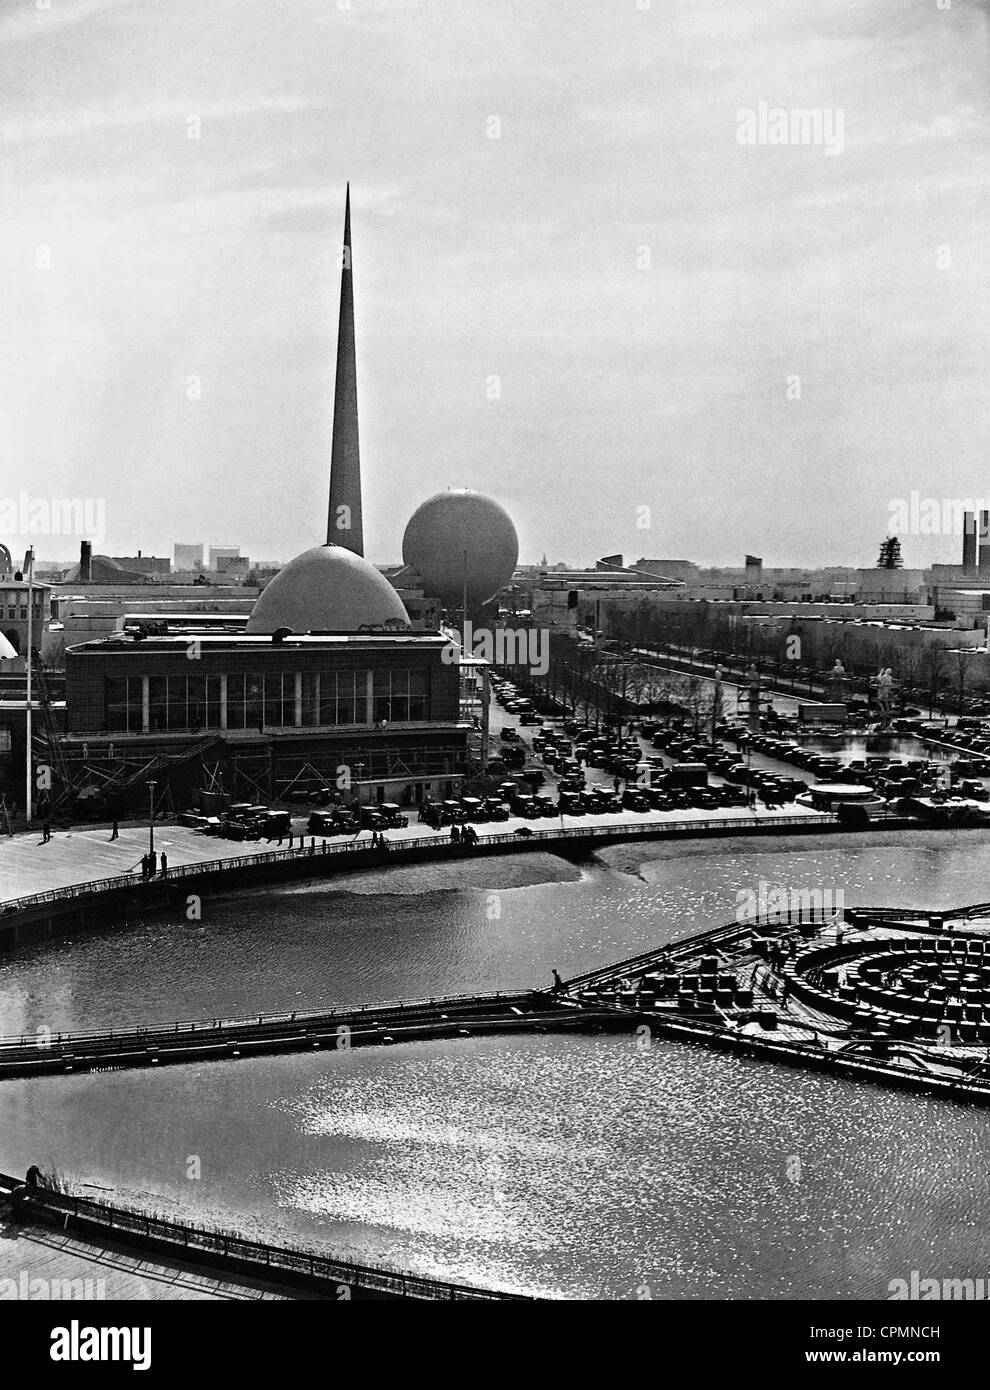 Site of the World Exhibition of New York, 1939 - Stock Image